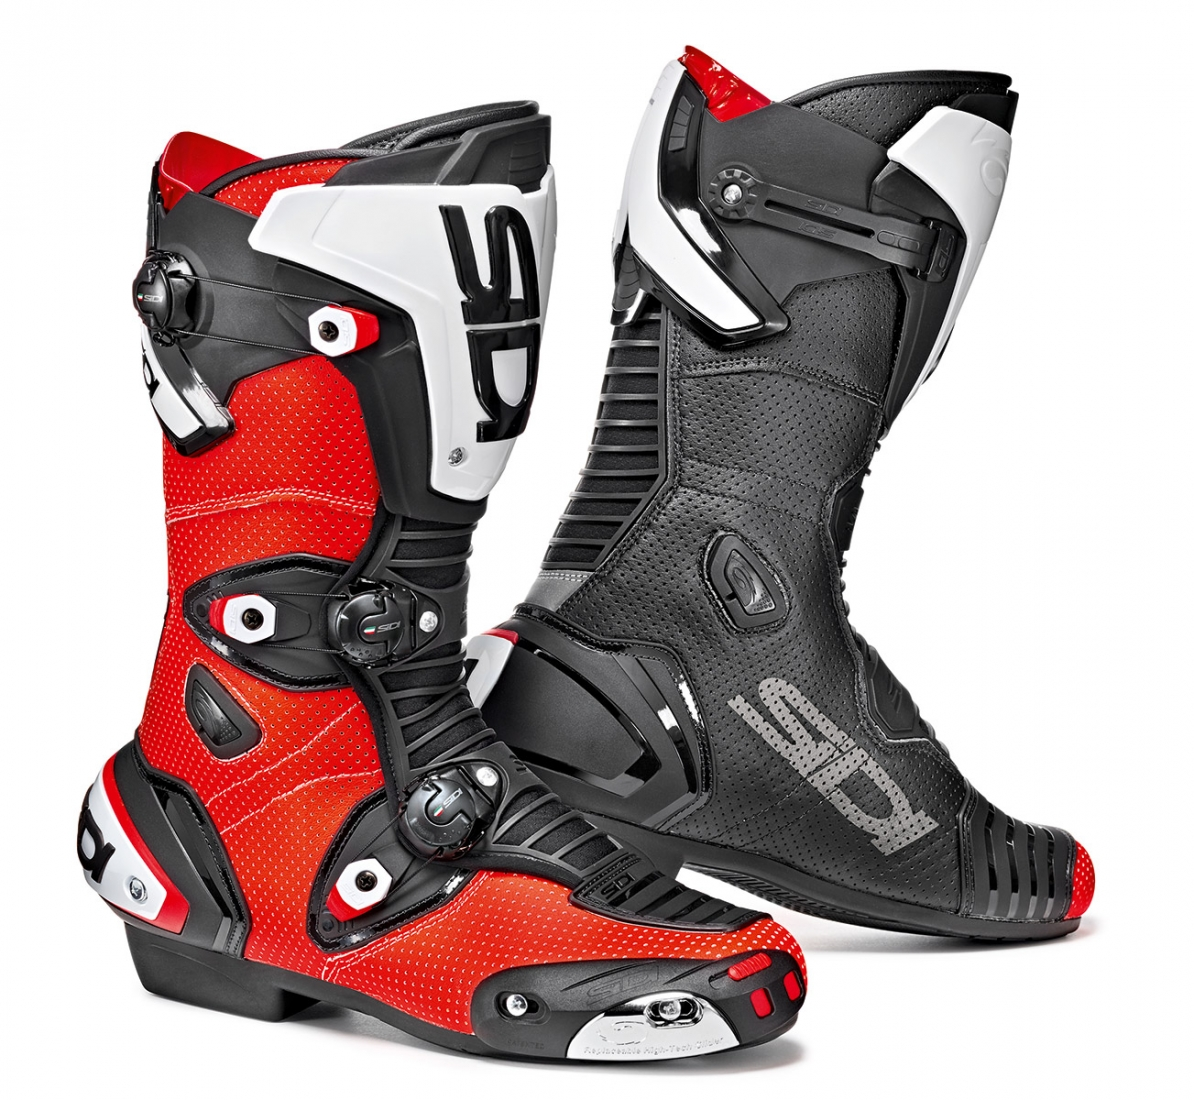 Cizme Moto SIDI Racing MAG-1 AIR